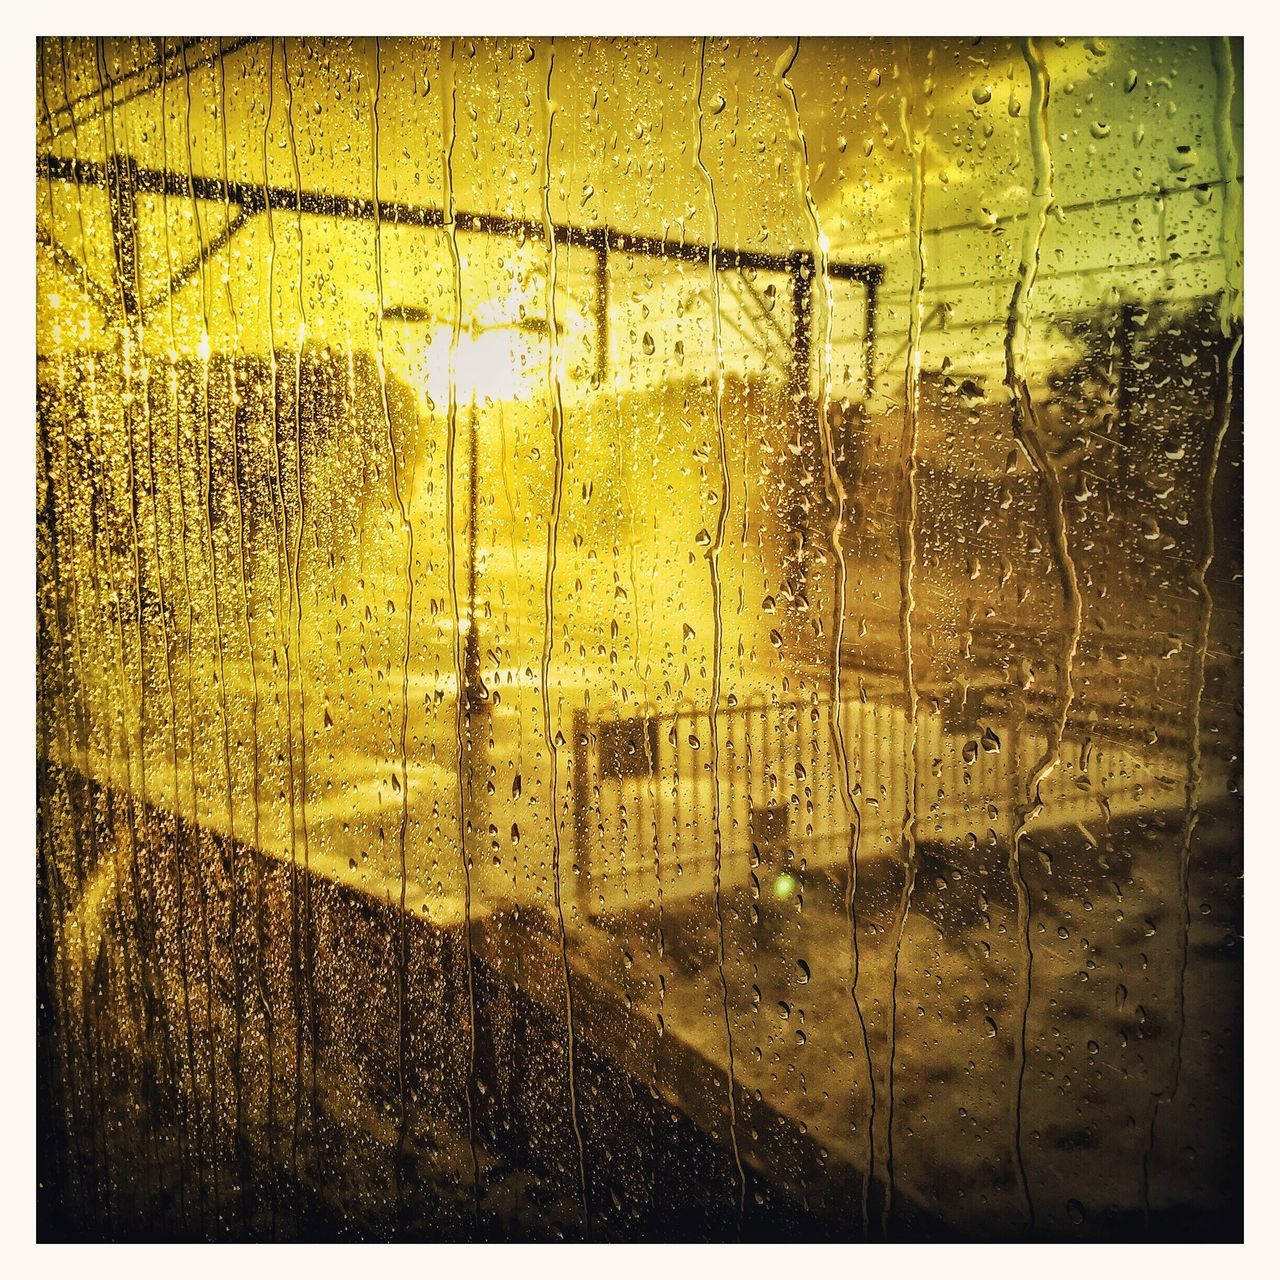 Close-Up Of Wet Glass Window During Sunset In Monsoon